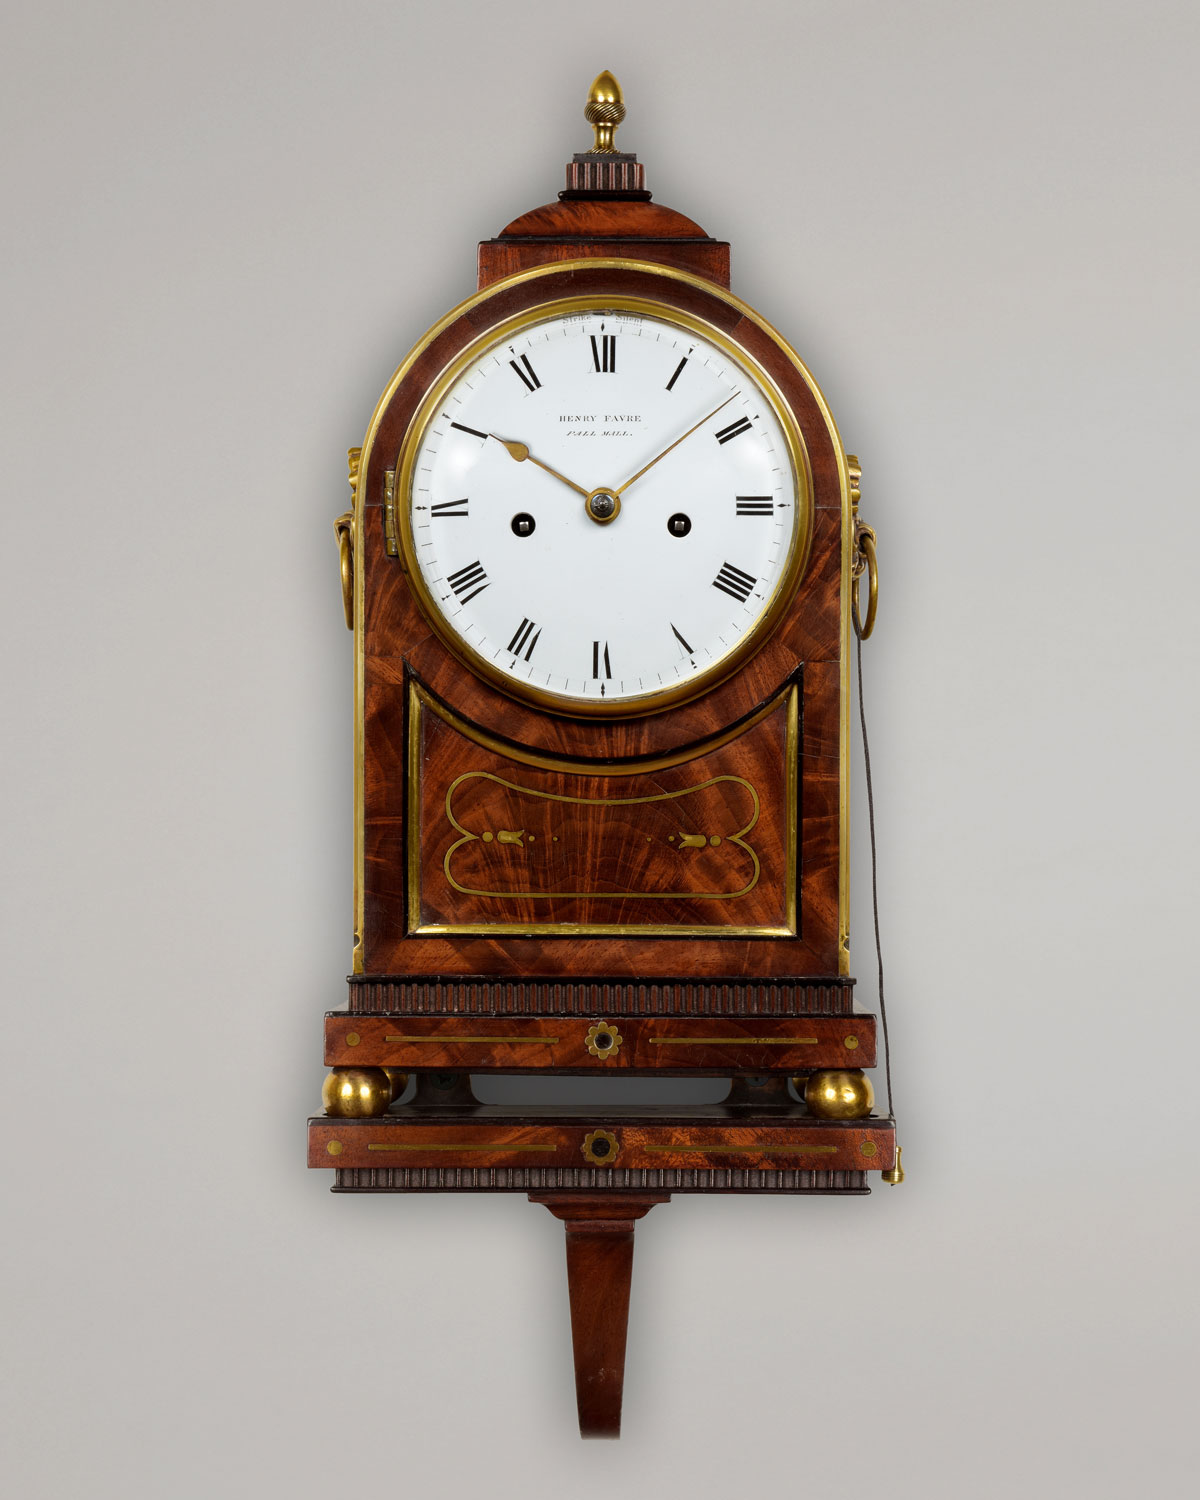 HENRY FAVRE, PALL MALL, LONDON. A fine small English Regency period enamel dial bracket clock